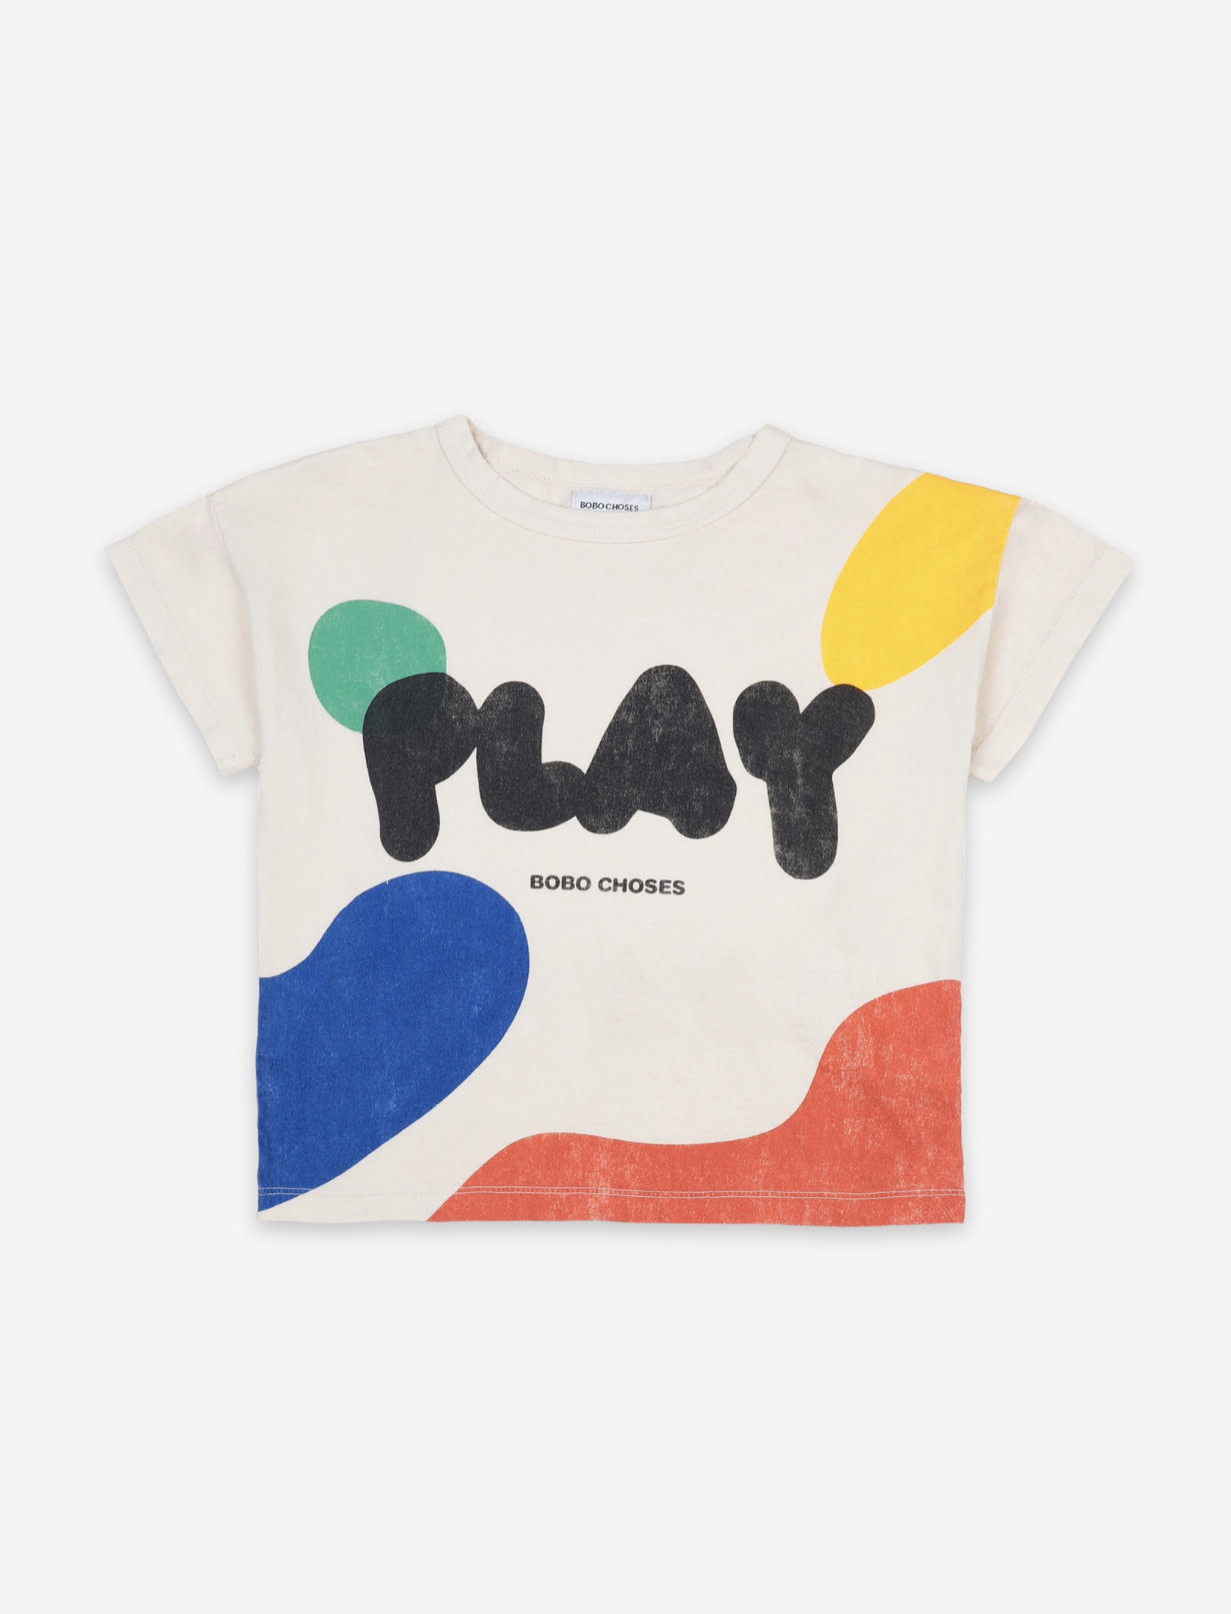 BOBO CHOSES Play Landscape Short Sleeve Tshirt